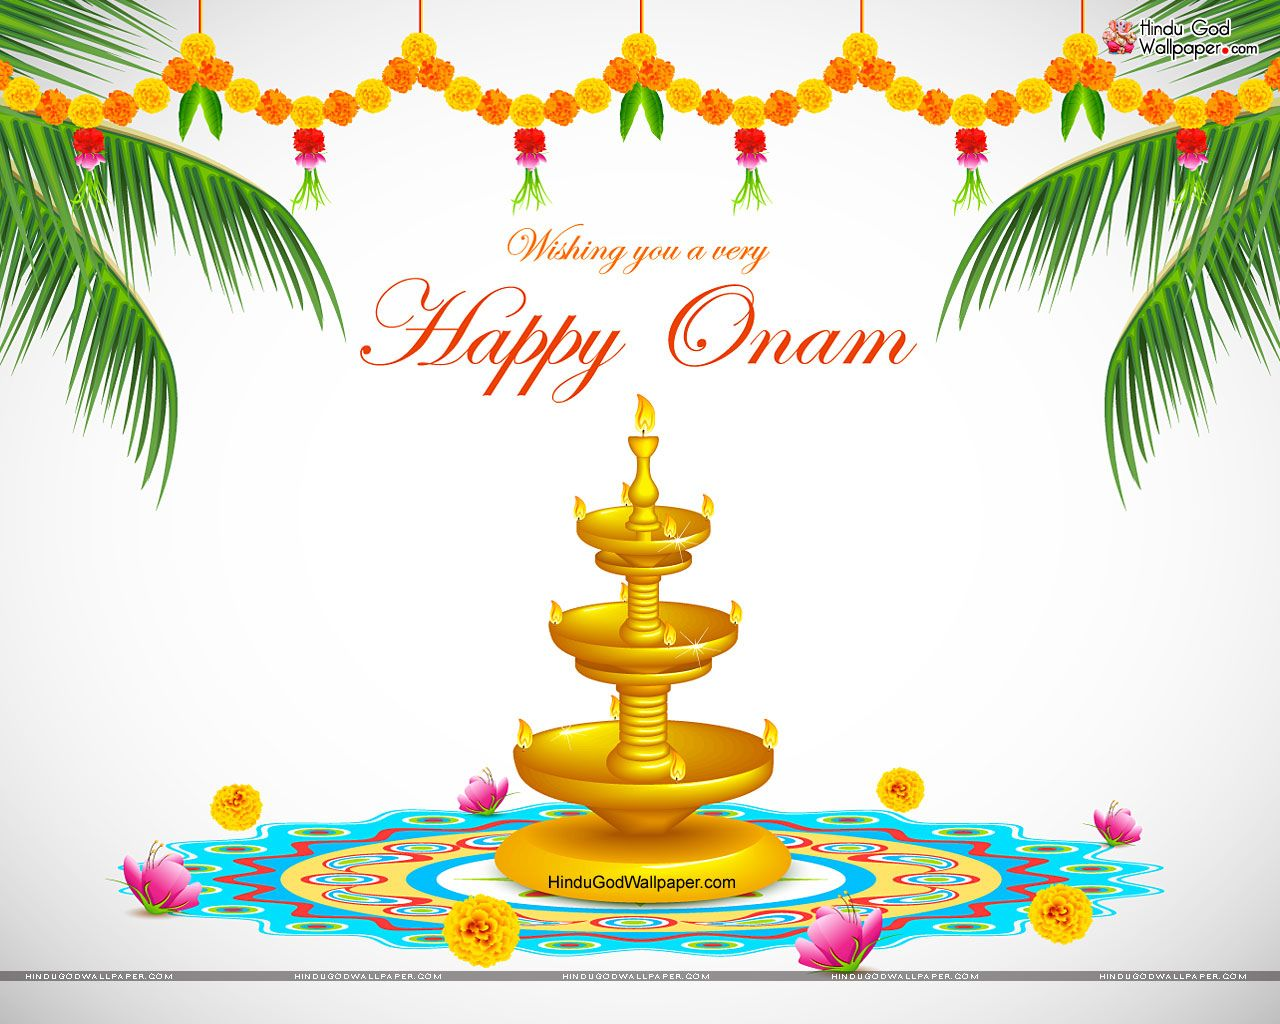 Onam Pookalam Designs Wallpapers Images Photos Onam Wallpapers